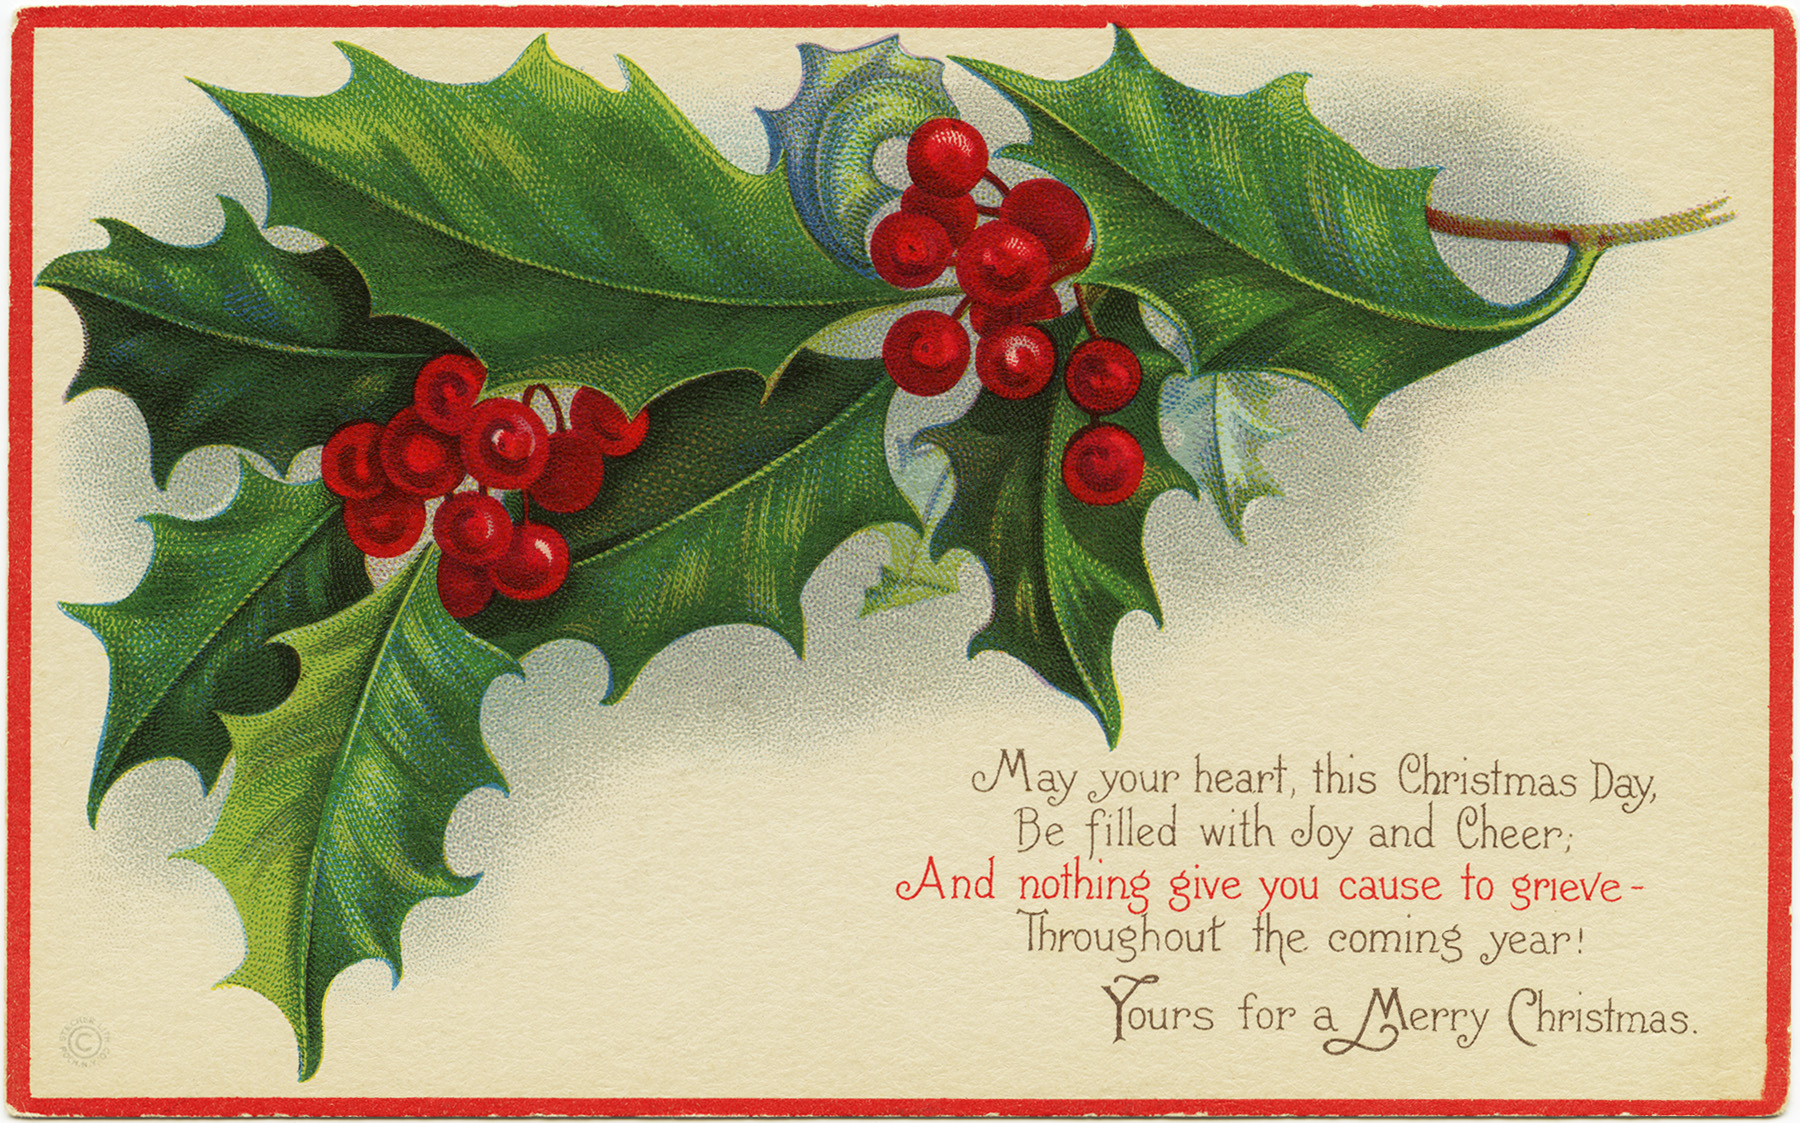 Stetcher Holly And Berries Free Christmas Image Old Design Shop Blog